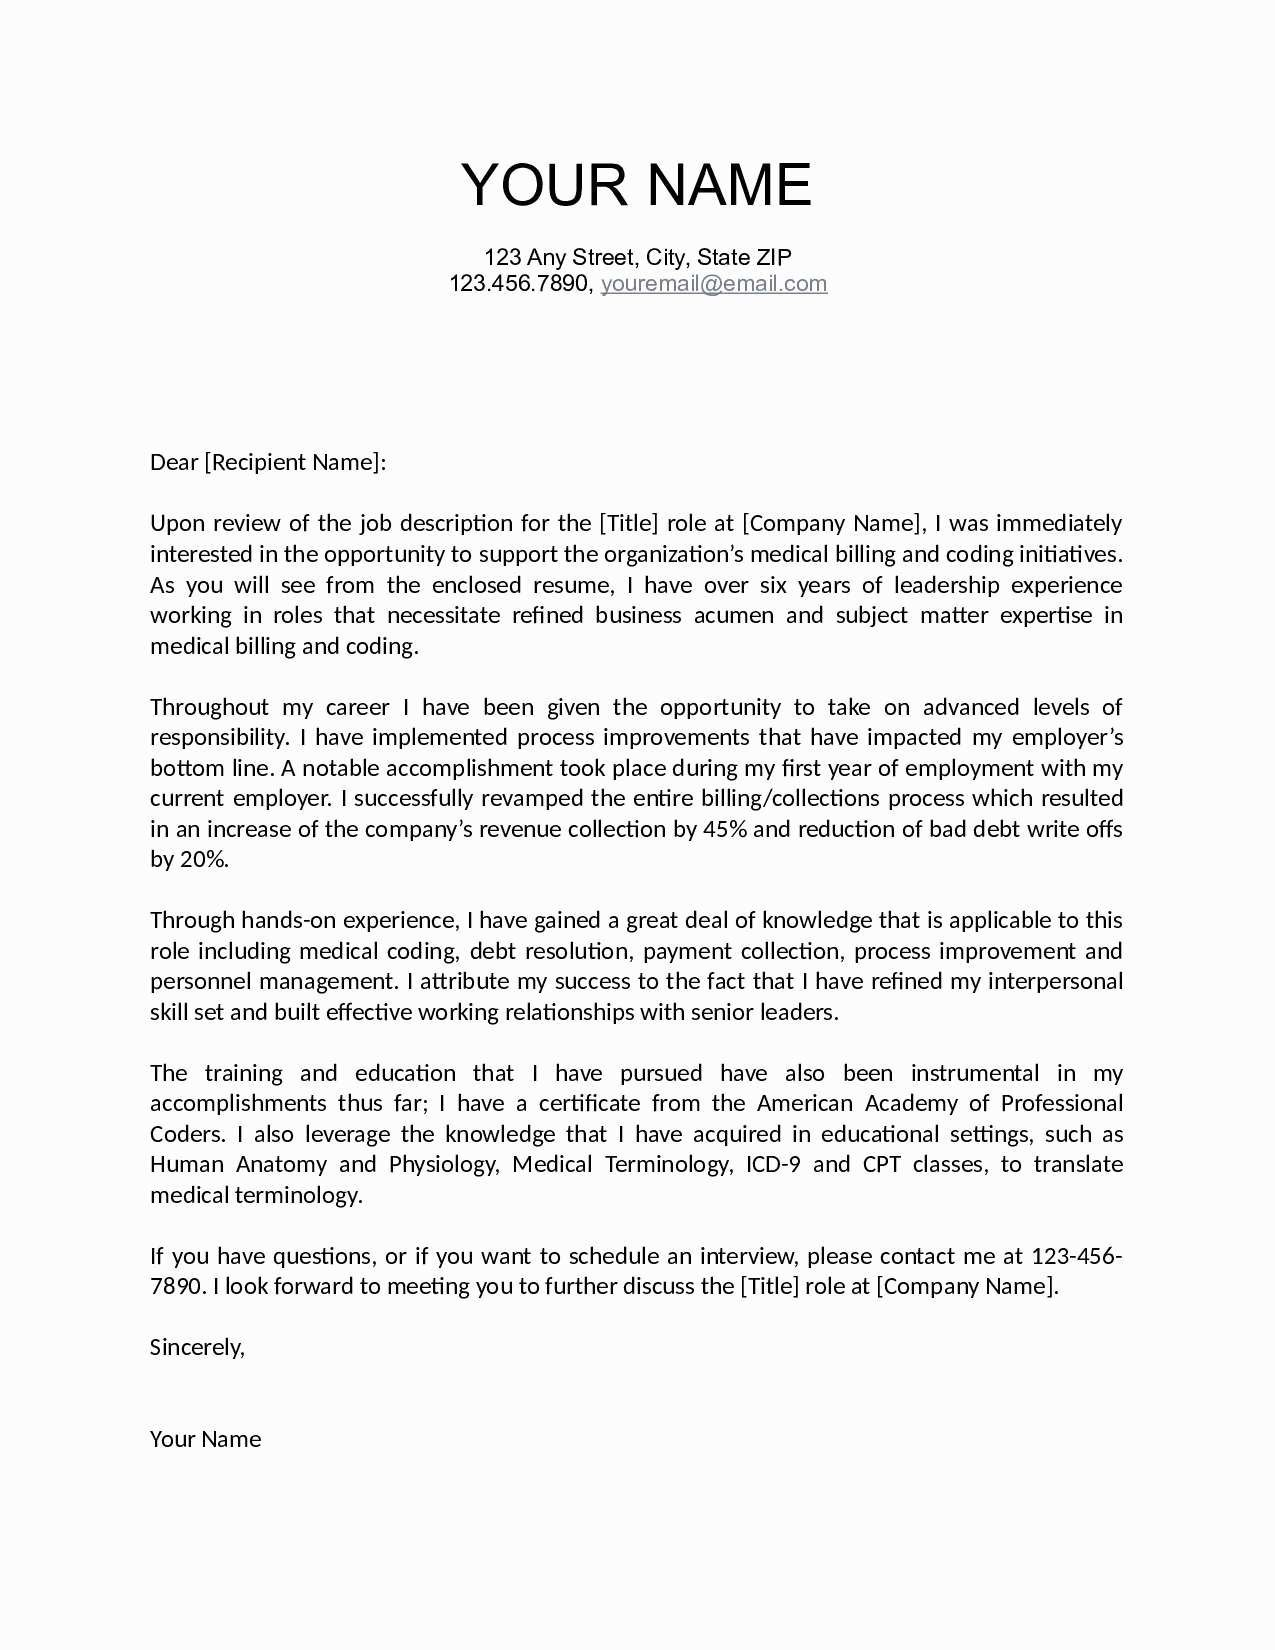 Rent Reduction Letter Template - Cover Letter for Oil and Gas Job Save Lovely Job Fer Letter Template